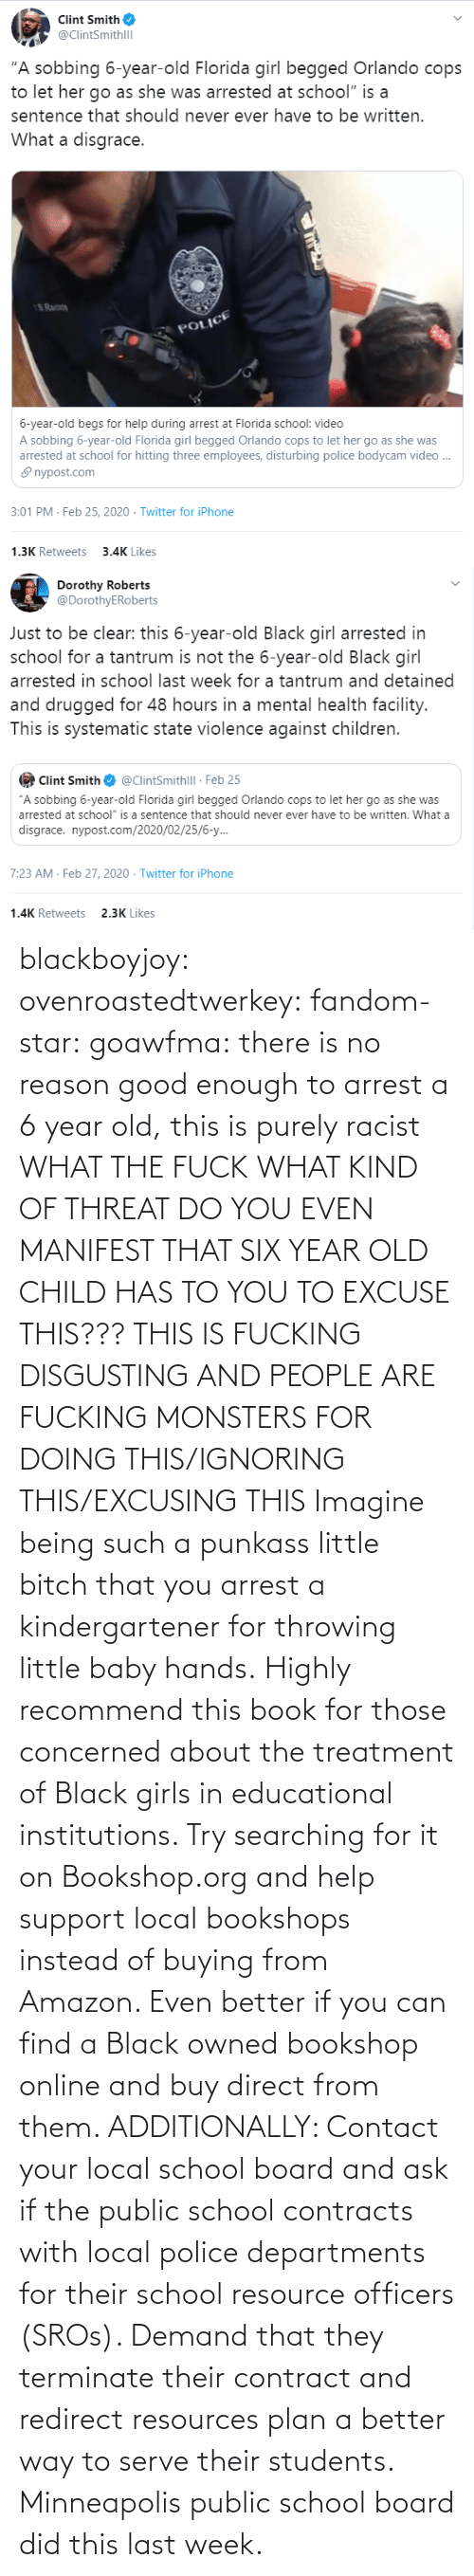 support: blackboyjoy:  ovenroastedtwerkey:  fandom-star:  goawfma: there is no reason good enough to arrest a 6 year old, this is purely racist WHAT THE FUCK WHAT KIND OF THREAT DO YOU EVEN MANIFEST THAT SIX YEAR OLD CHILD HAS TO YOU TO EXCUSE THIS??? THIS IS FUCKING DISGUSTING AND PEOPLE ARE FUCKING MONSTERS FOR DOING THIS/IGNORING THIS/EXCUSING THIS    Imagine being such a punkass little bitch that you arrest a kindergartener for throwing little baby hands.  Highly recommend this book for those concerned about the treatment of Black girls in educational institutions.  Try searching for it on Bookshop.org and help support local bookshops instead of buying from Amazon. Even better if you can find a Black owned bookshop online and buy direct from them.  ADDITIONALLY: Contact your local school board and ask if the public school contracts with local police departments for their school resource officers (SROs). Demand that they terminate their contract and redirect resources plan a better way to serve their students. Minneapolis public school board did this last week.